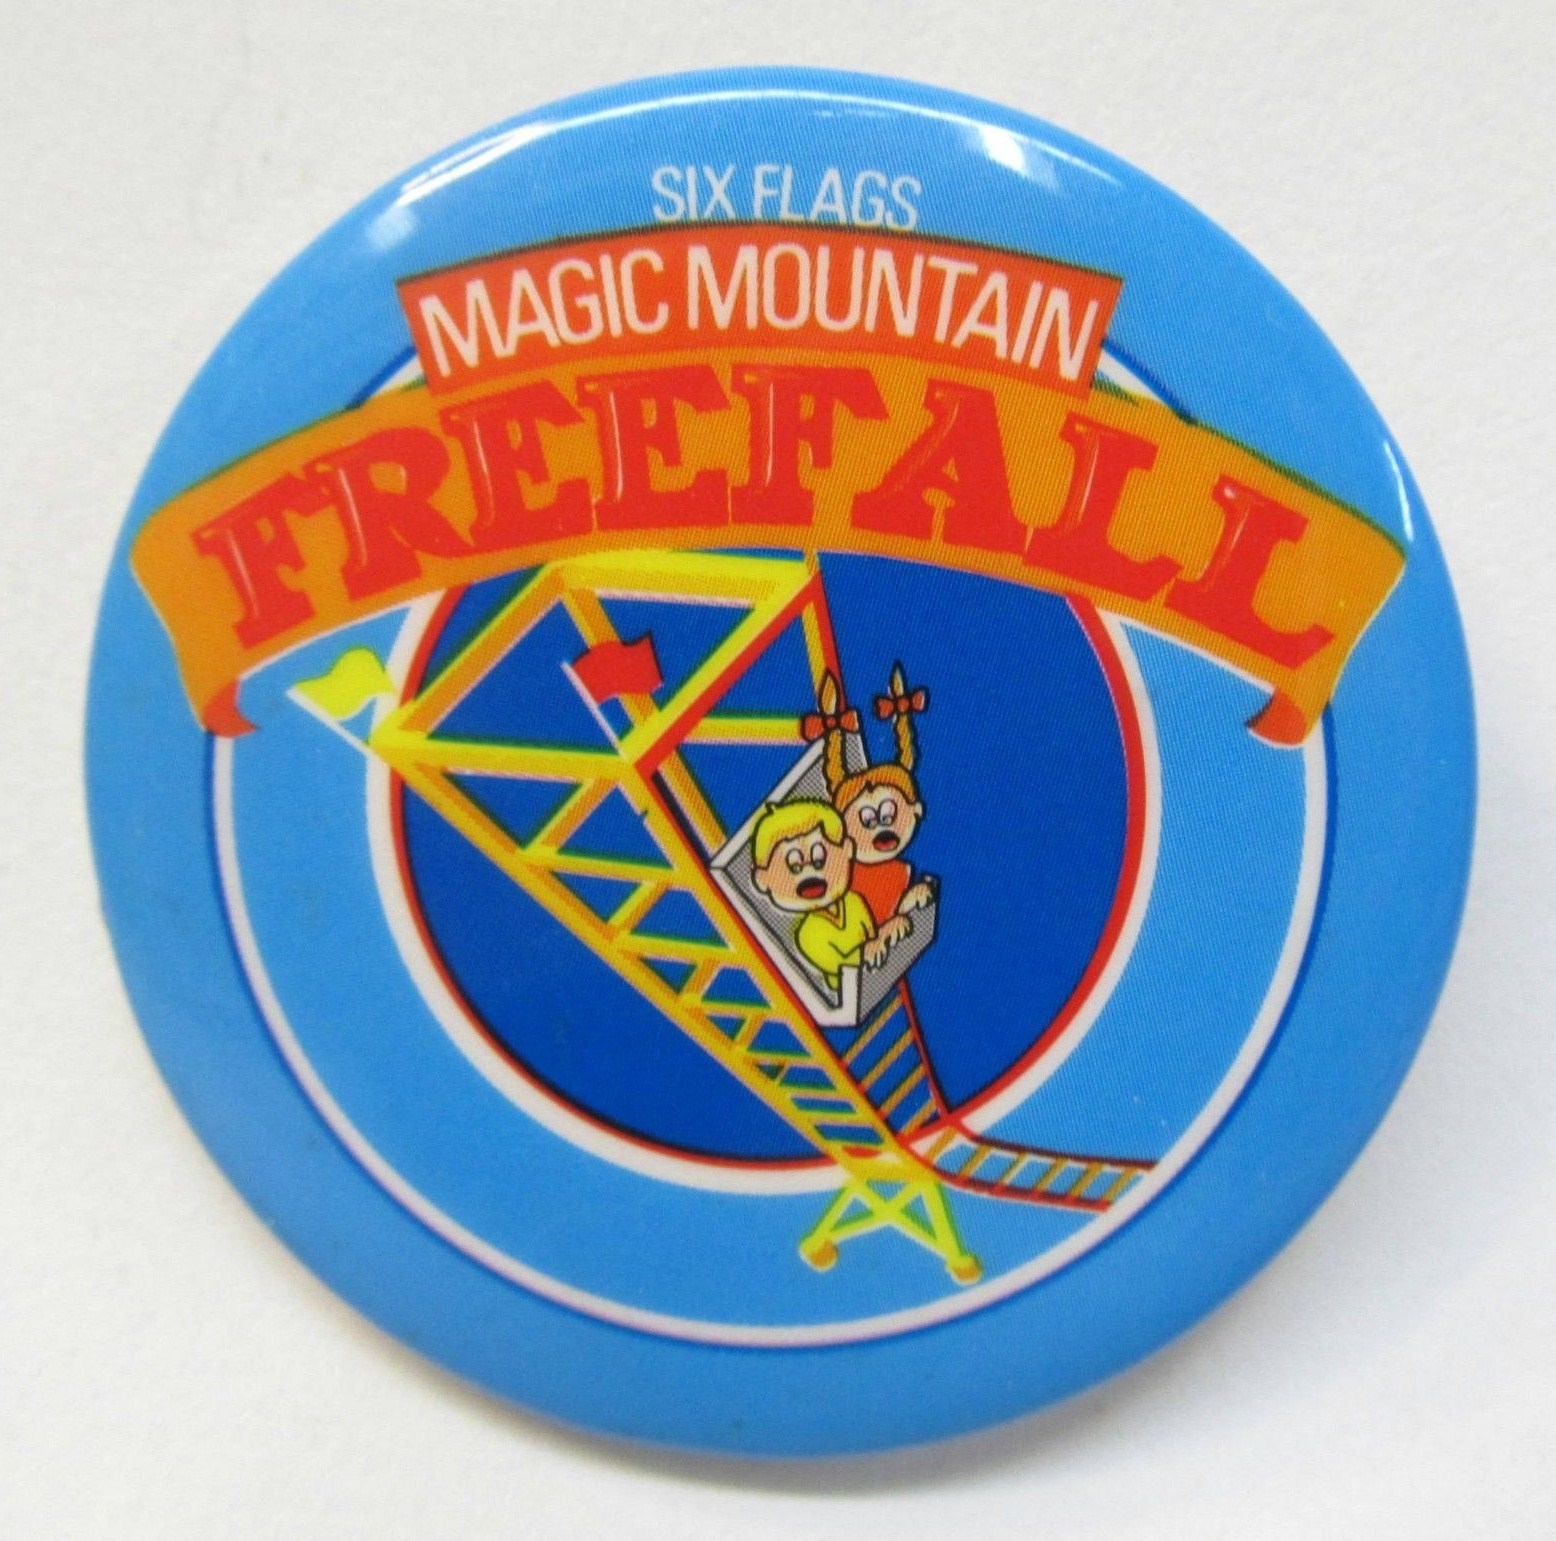 Meet The World: Freefall at Magic Mountain - 1982